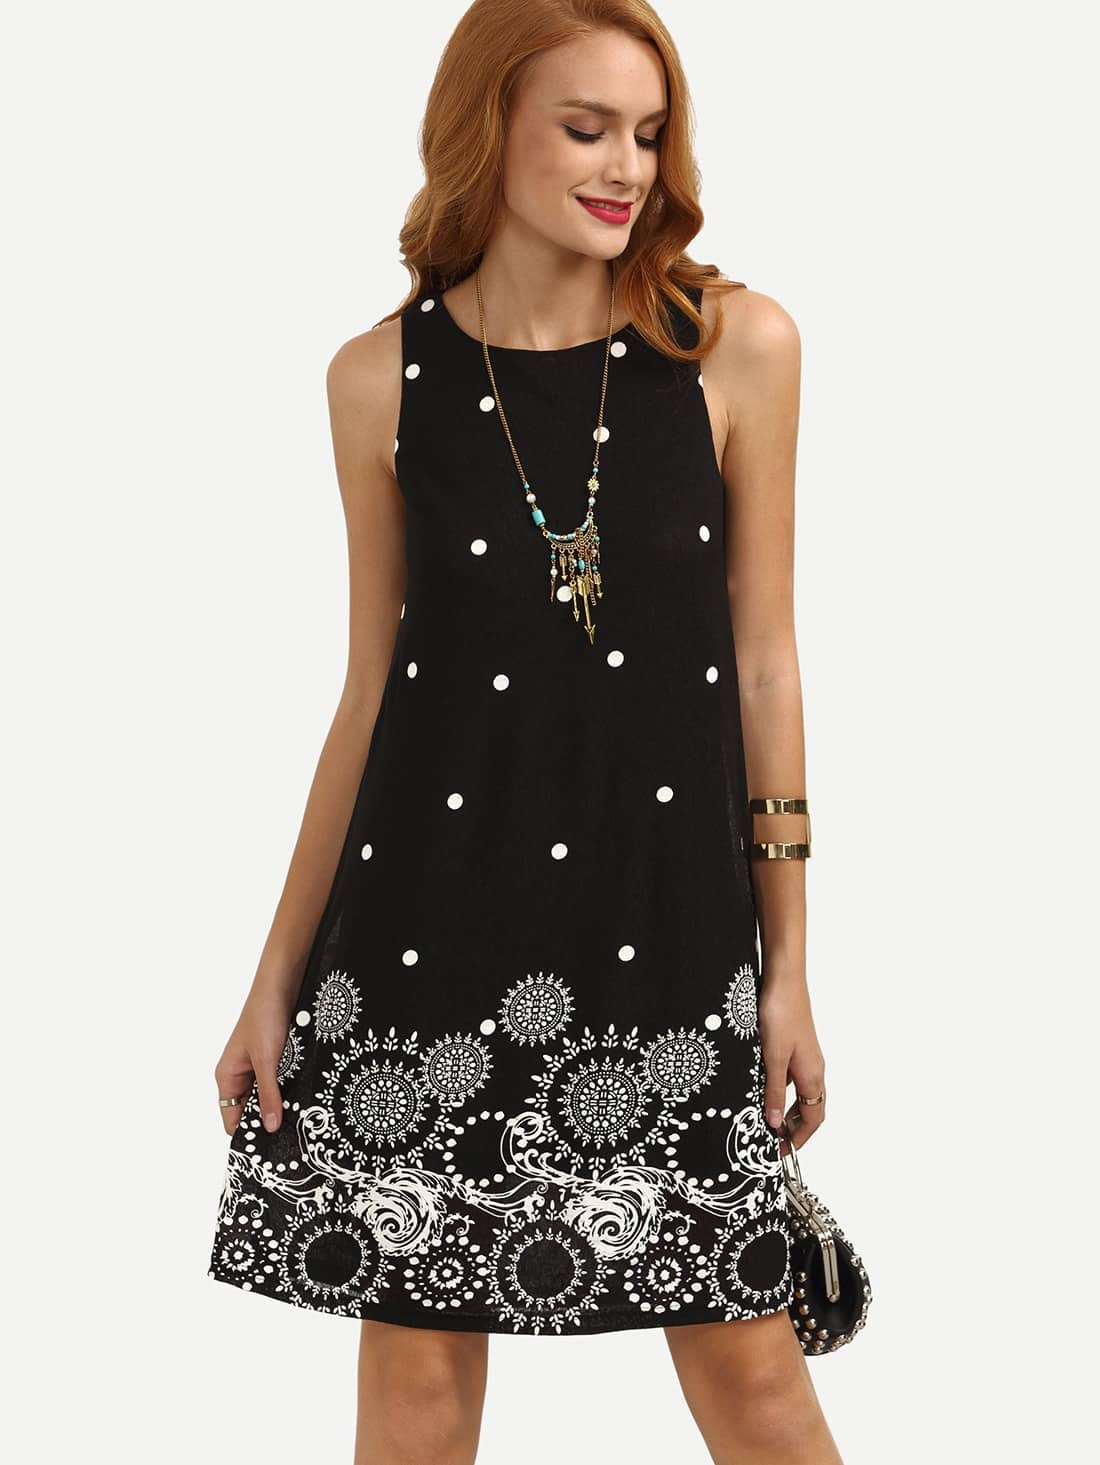 http://it.shein.com/Black-Polka-Dot-Print-Sleeveless-Shift-Dress-p-287133-cat-1727.html